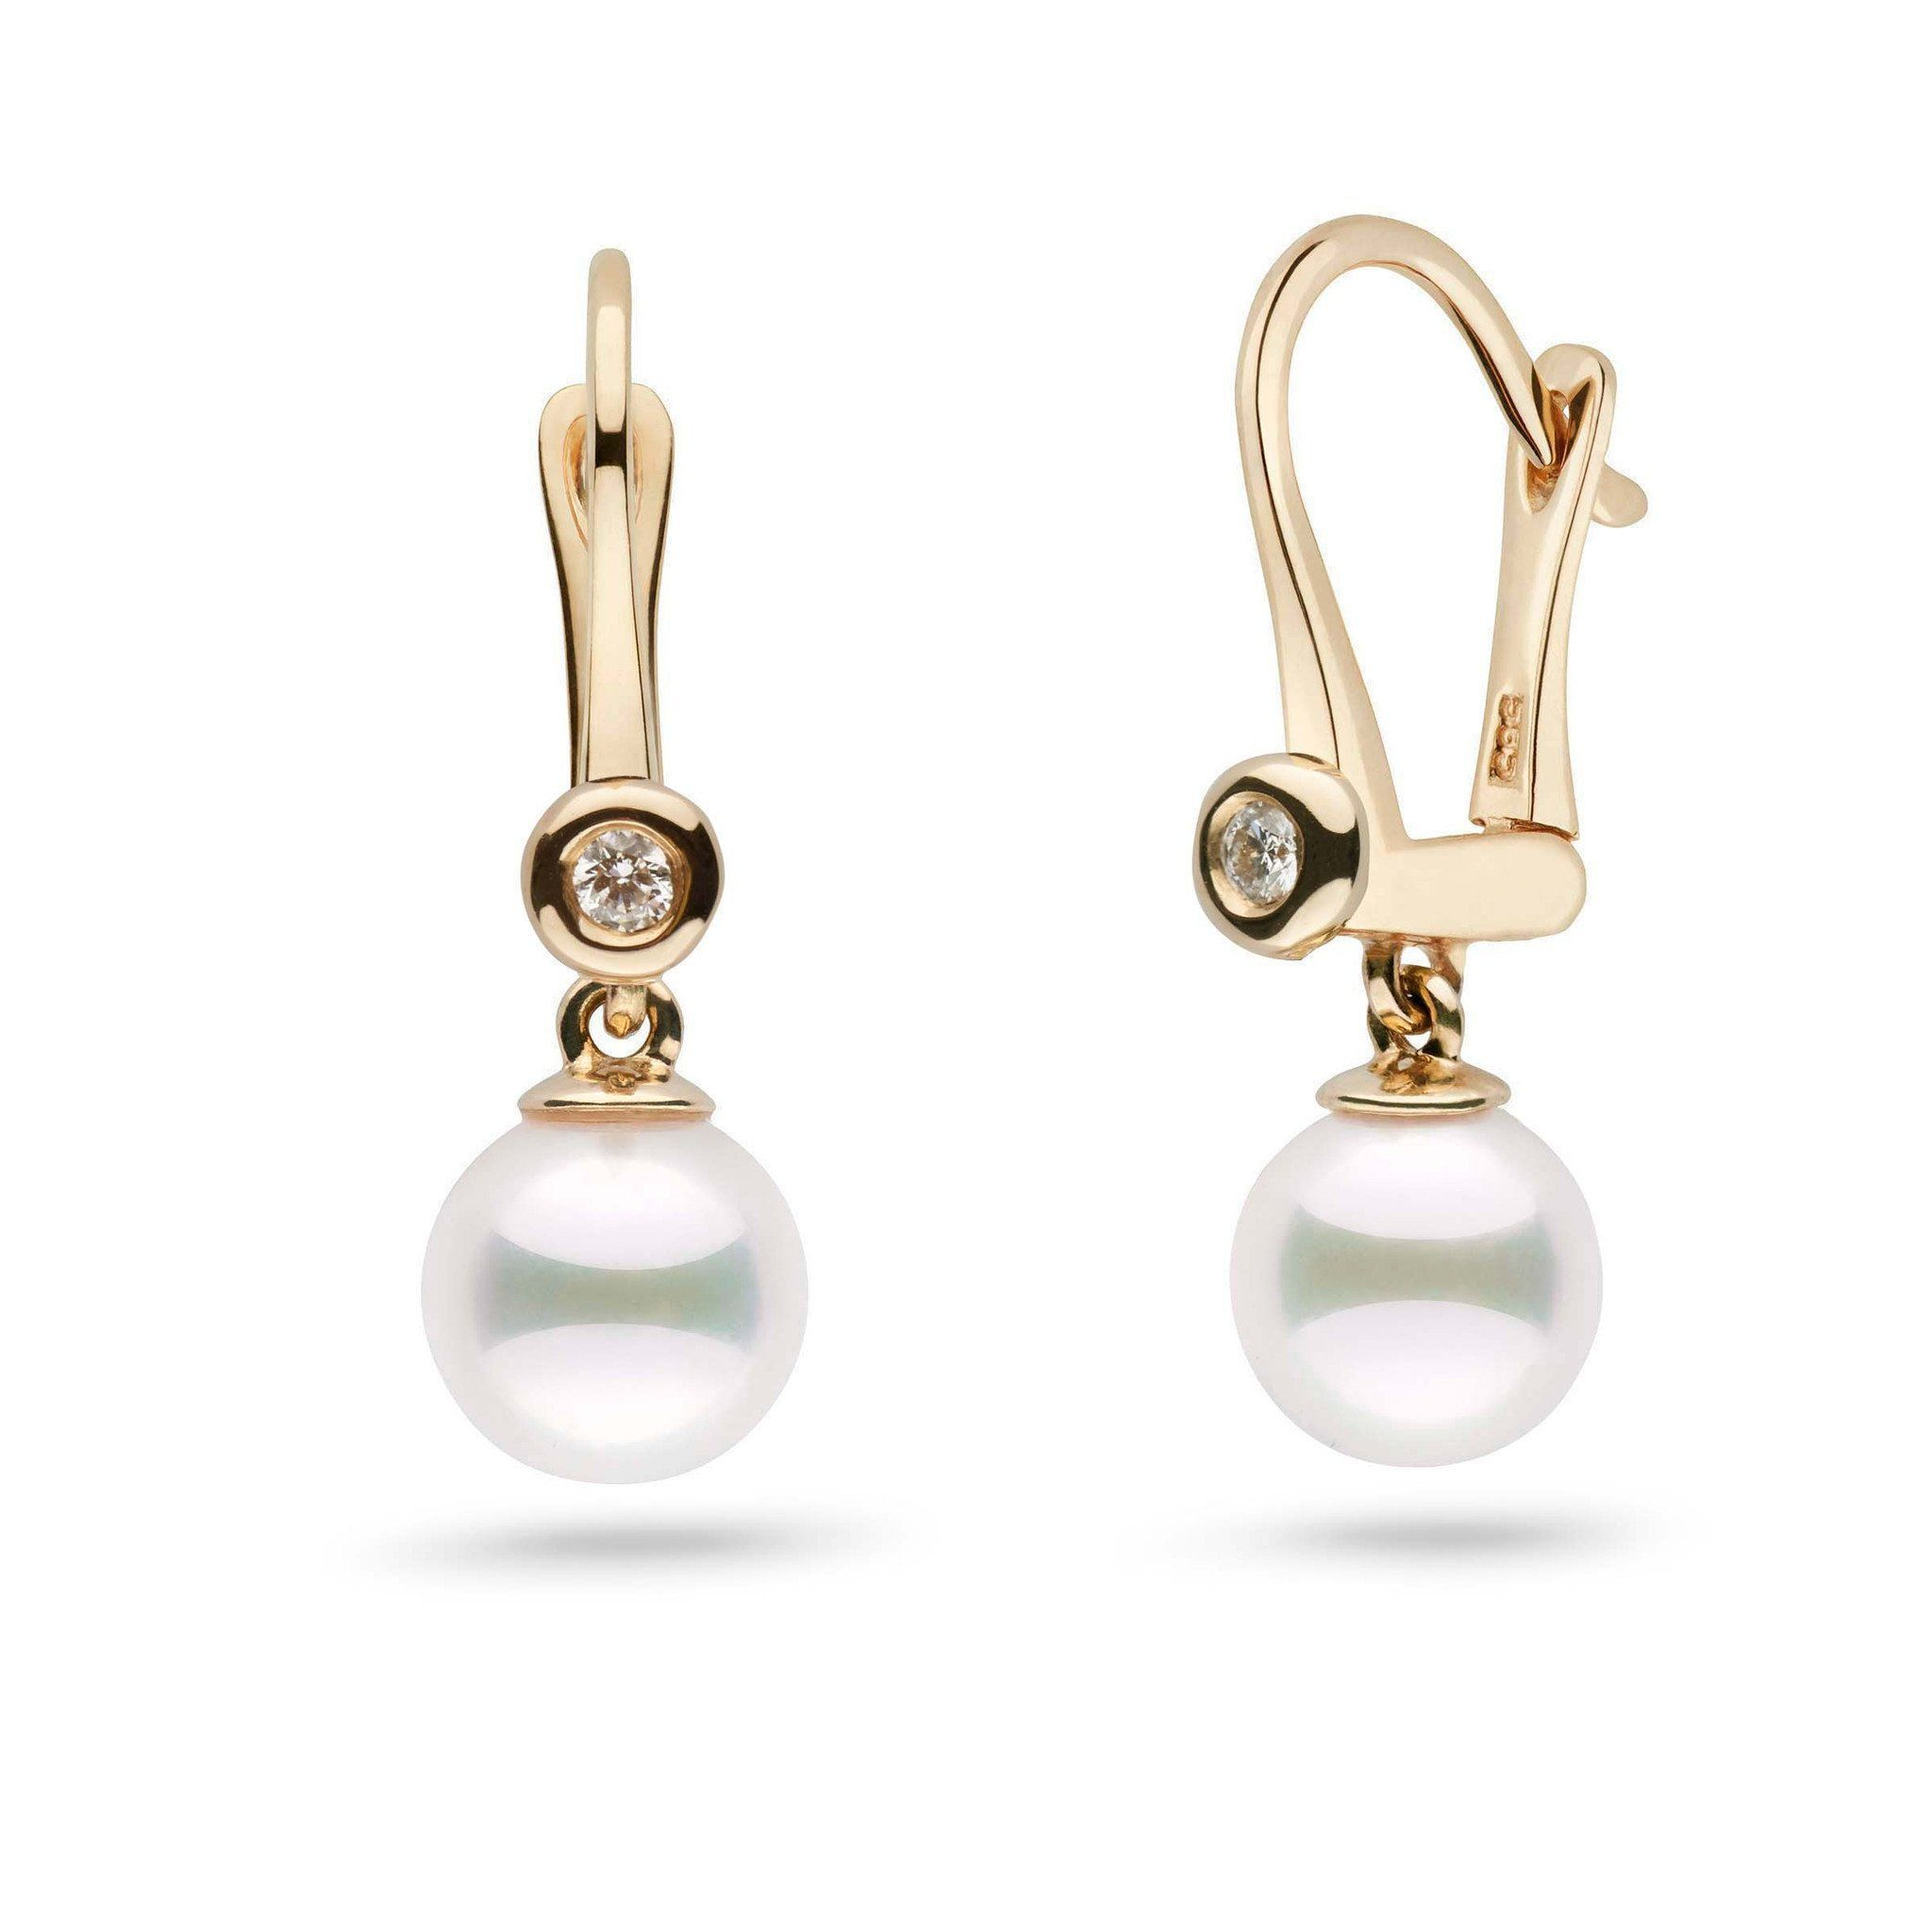 Romantic Collection Akoya 7.0-7.5 mm Pearl & Diamond Dangle Earrings